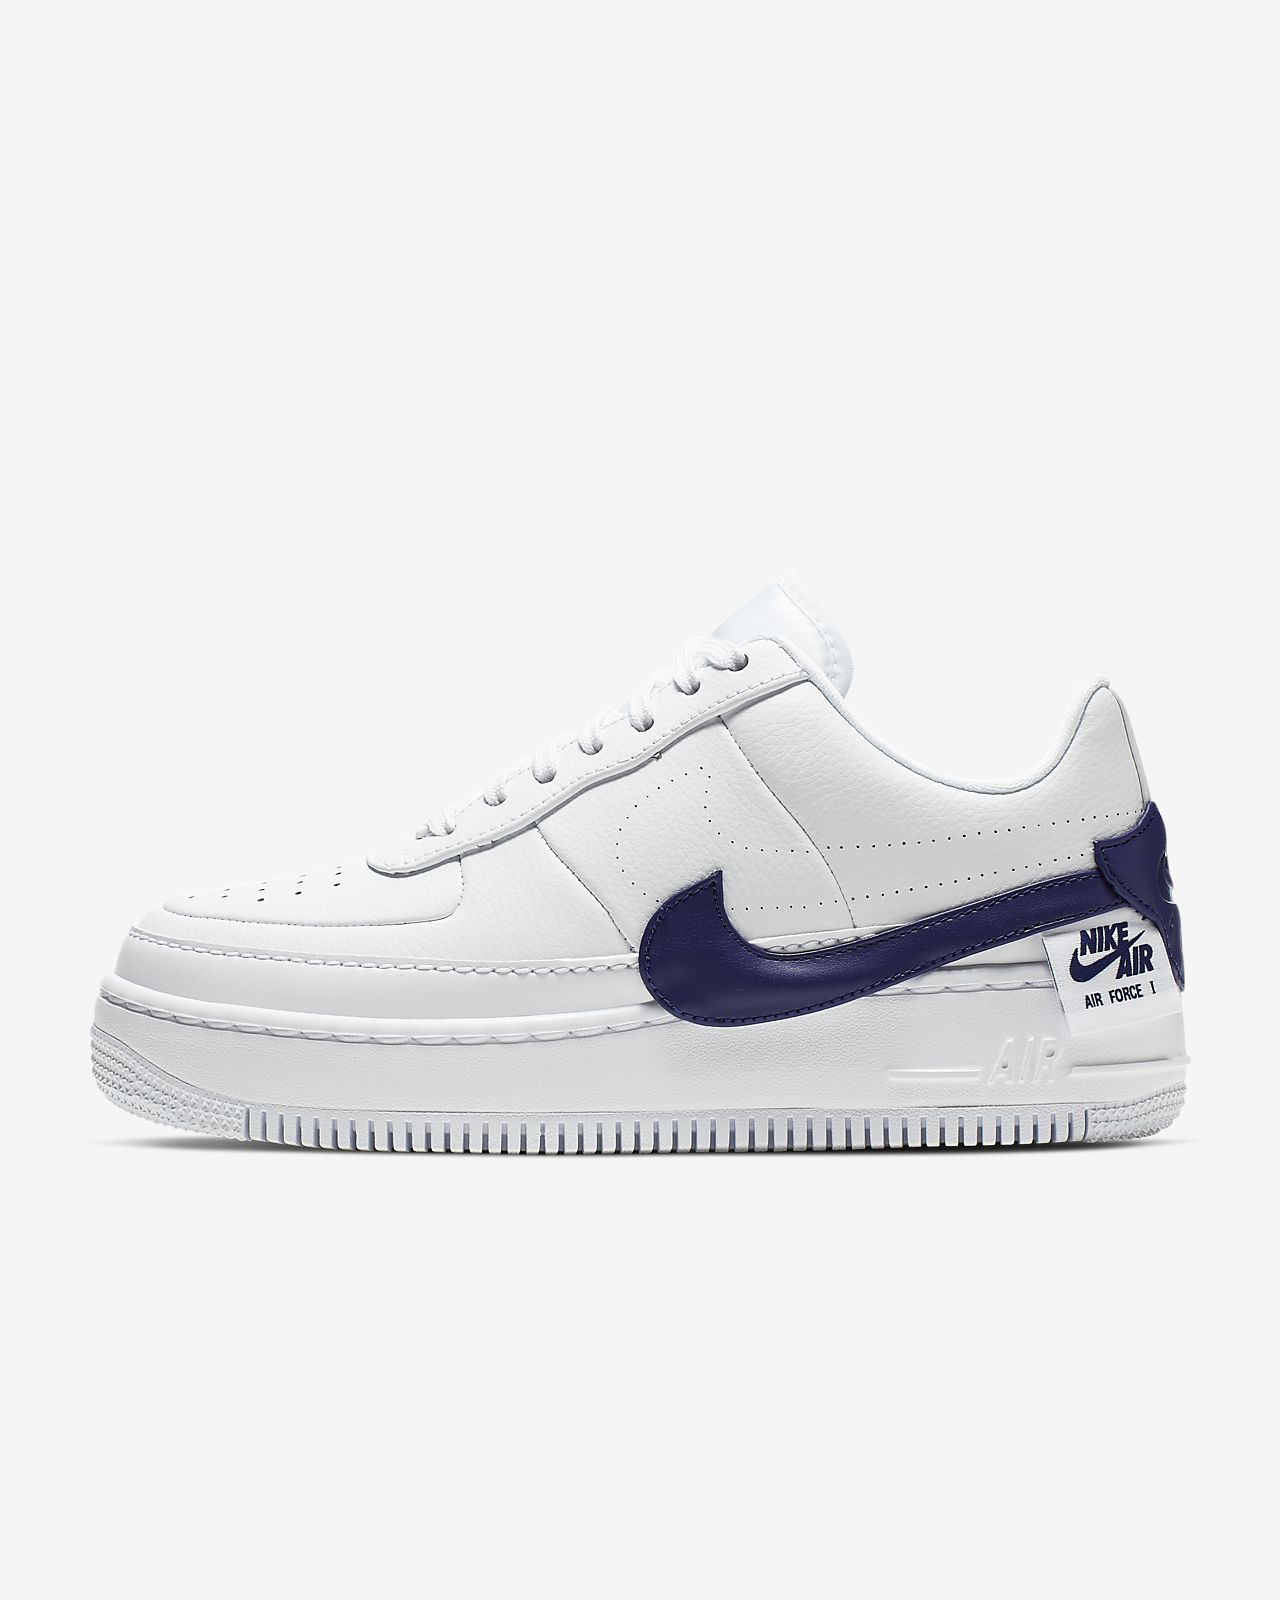 e1996a1f77312 Low Resolution Nike Air Force 1 Jester XX Shoe Nike Air Force 1 Jester XX  Shoe